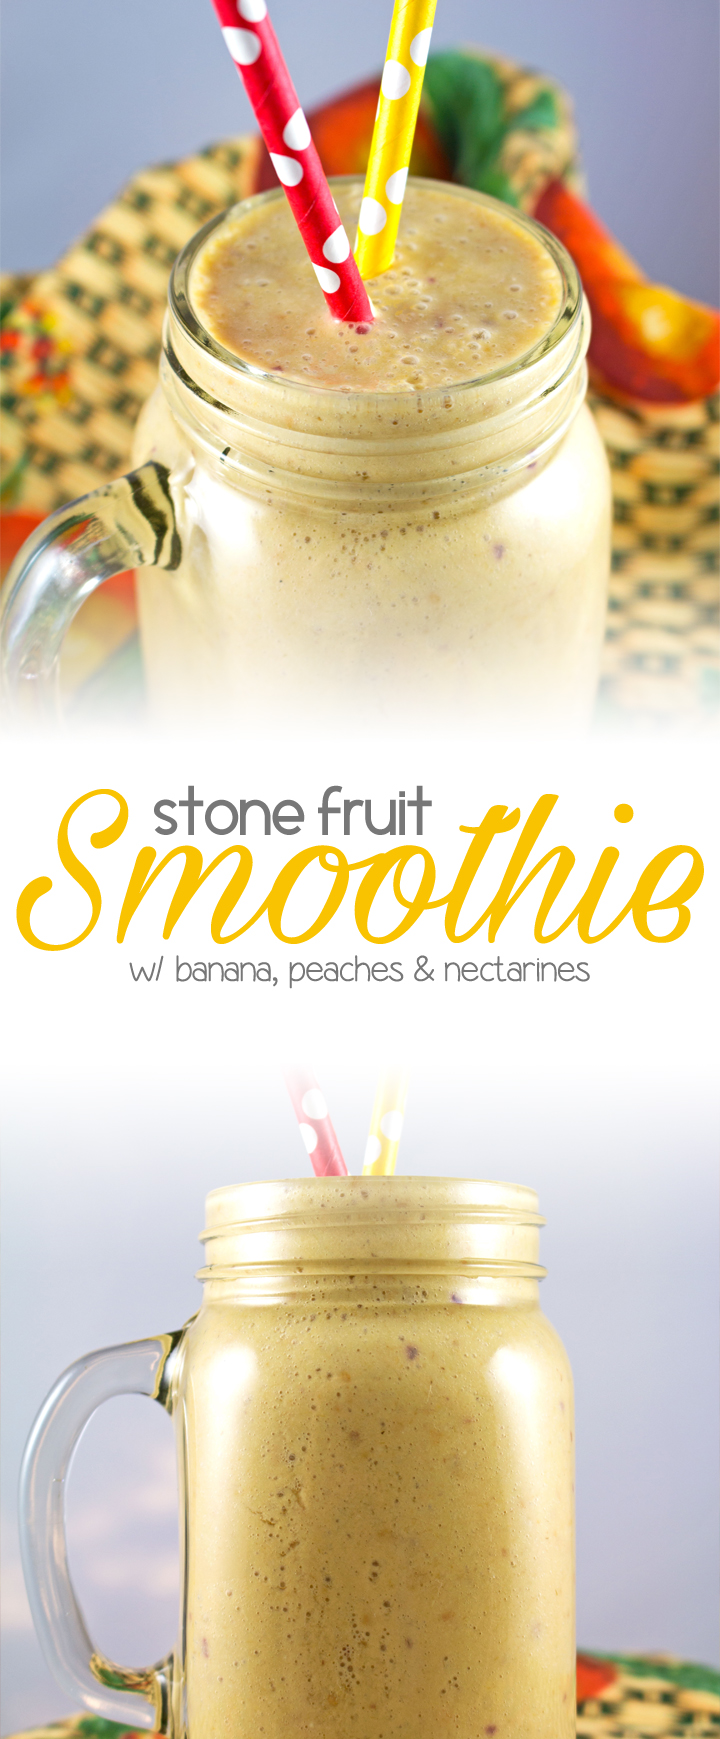 Stone Fruit Smoothie - One of my favorite smoothies, healthy & delicious. Loaded with banana, peach, nectarine, greek yogurt, honey & coconut milk!